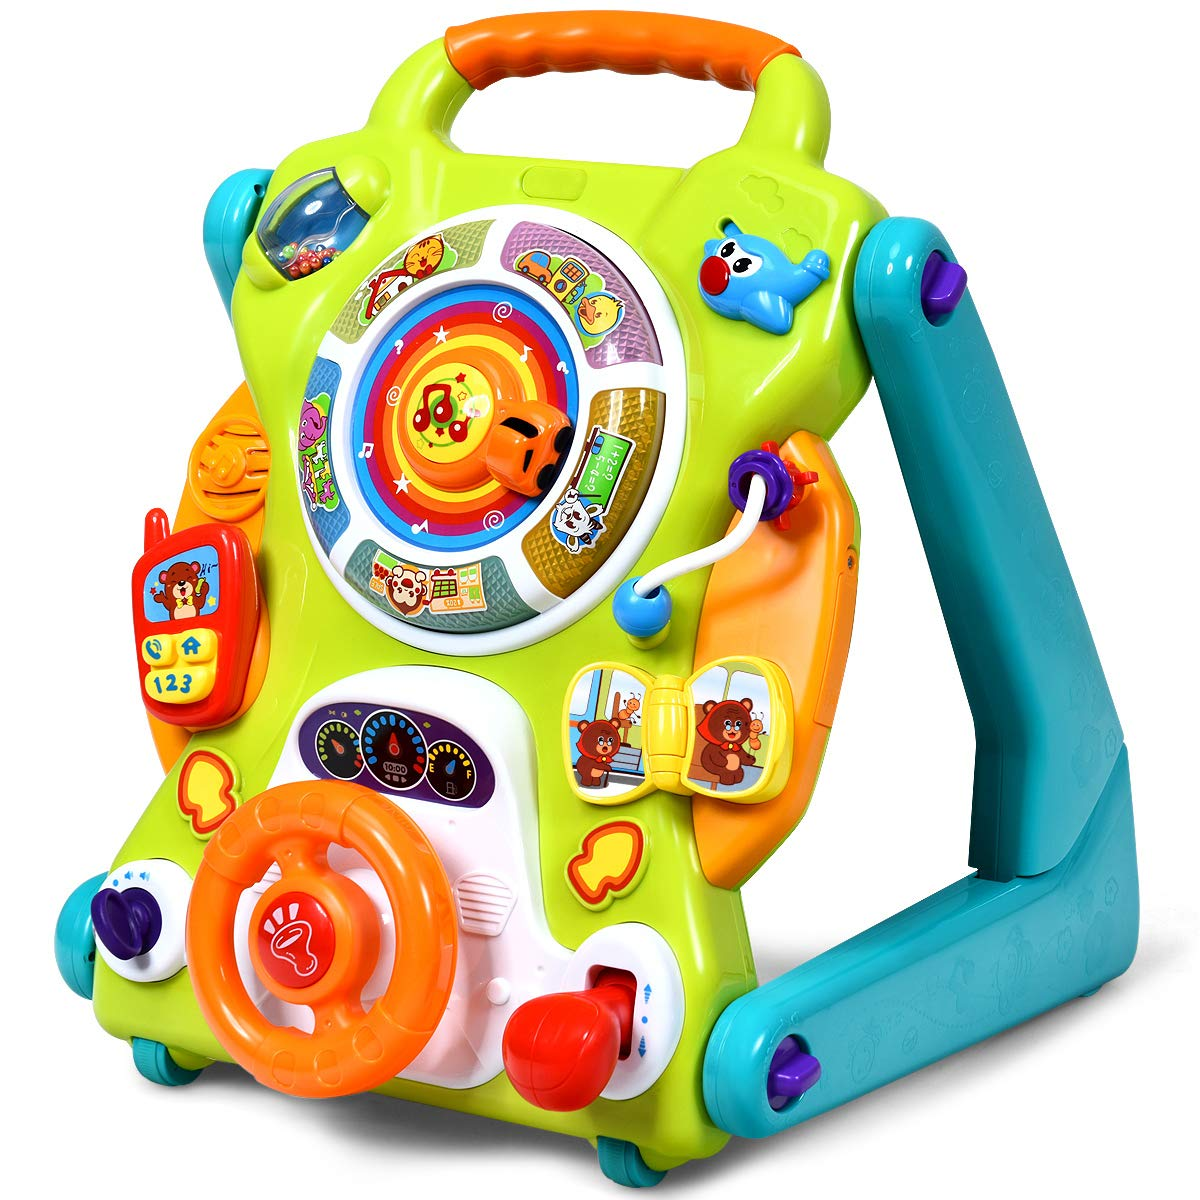 BABY JOY Sit-to-Stand Walker, 3 in 1 Baby Walker, Drawing Board, Entertainment Table, Kids Activity Center w/Lights, Music, Phone, Steering Wheel, Educational Push Toy for Toddlers (Blue)